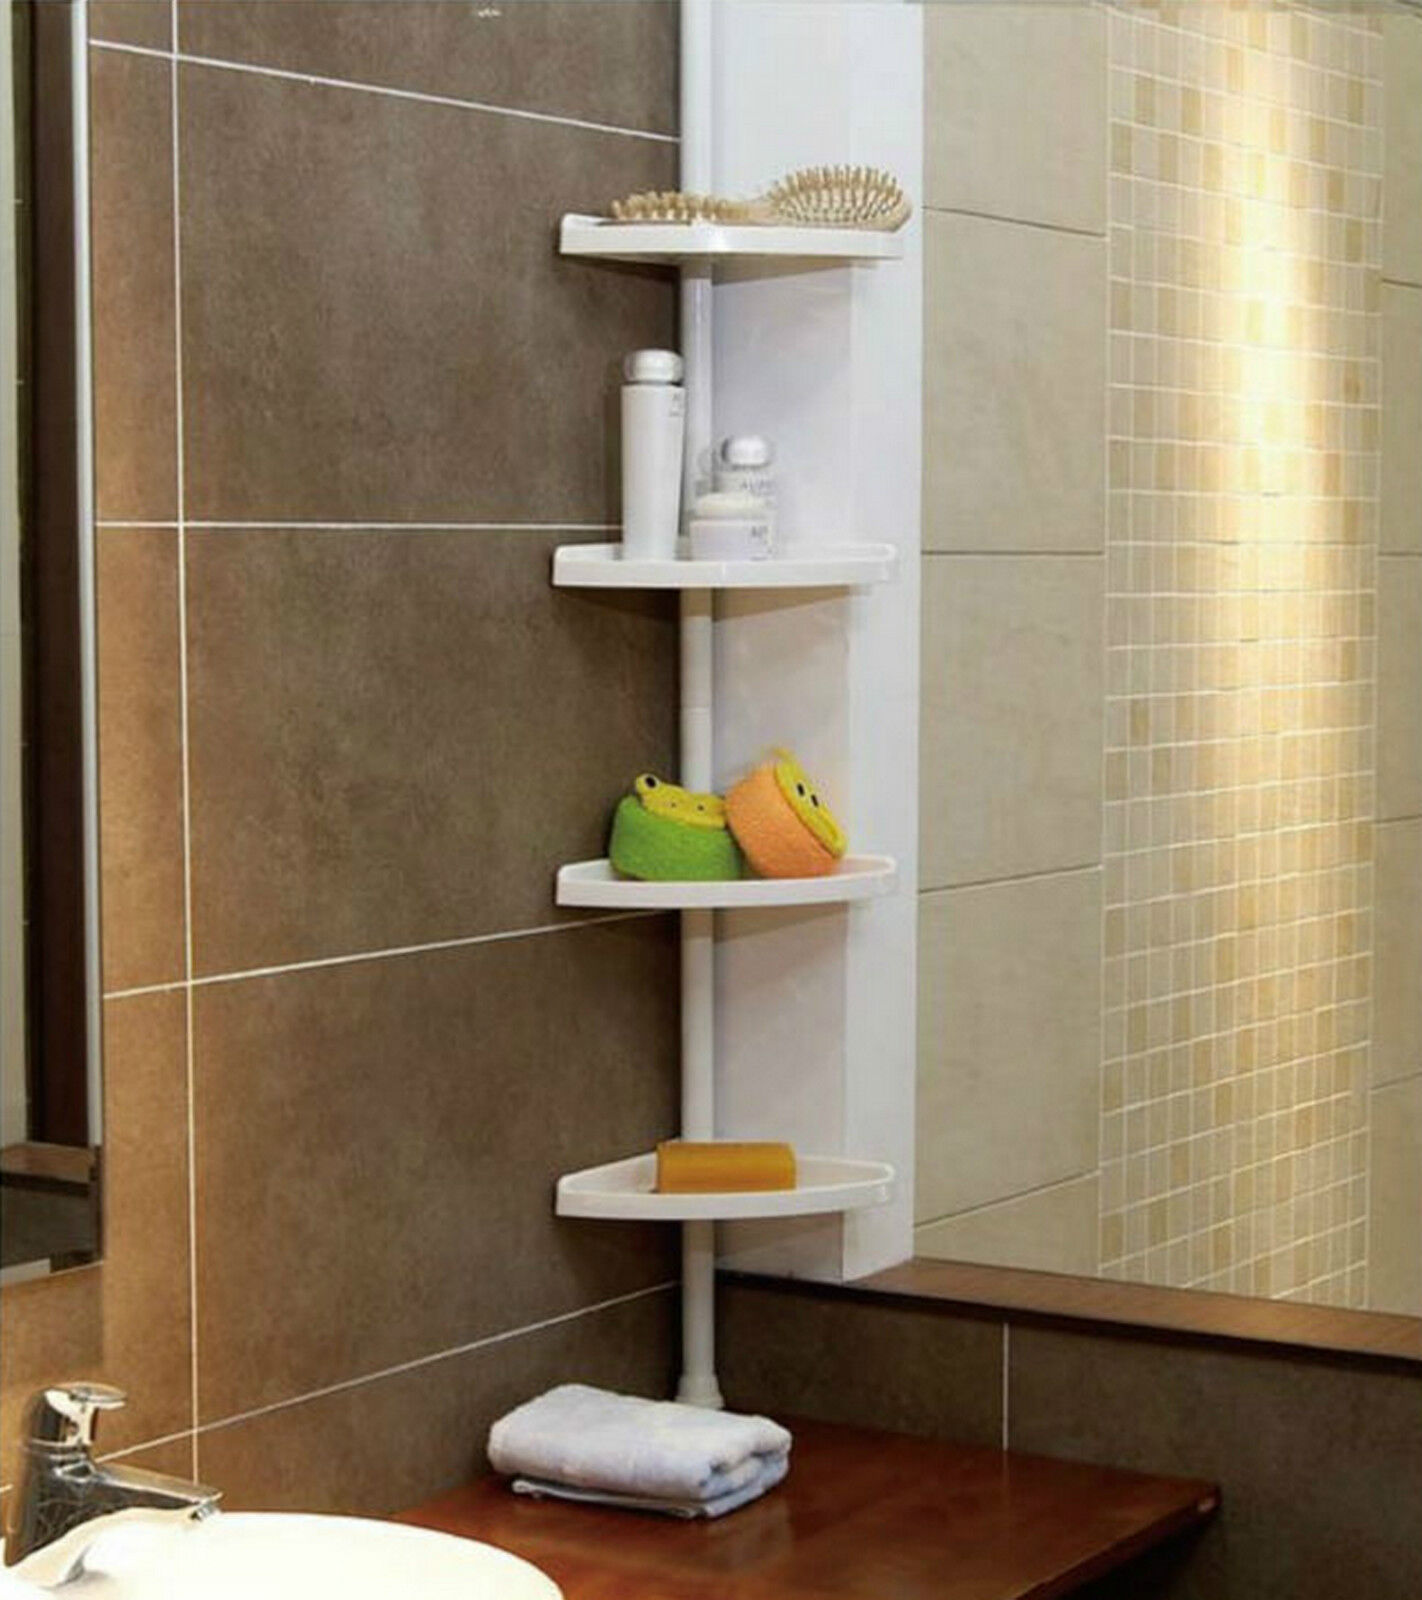 WHITE 4 Tier Adjustable Telescopic Corner Shower Bathroom